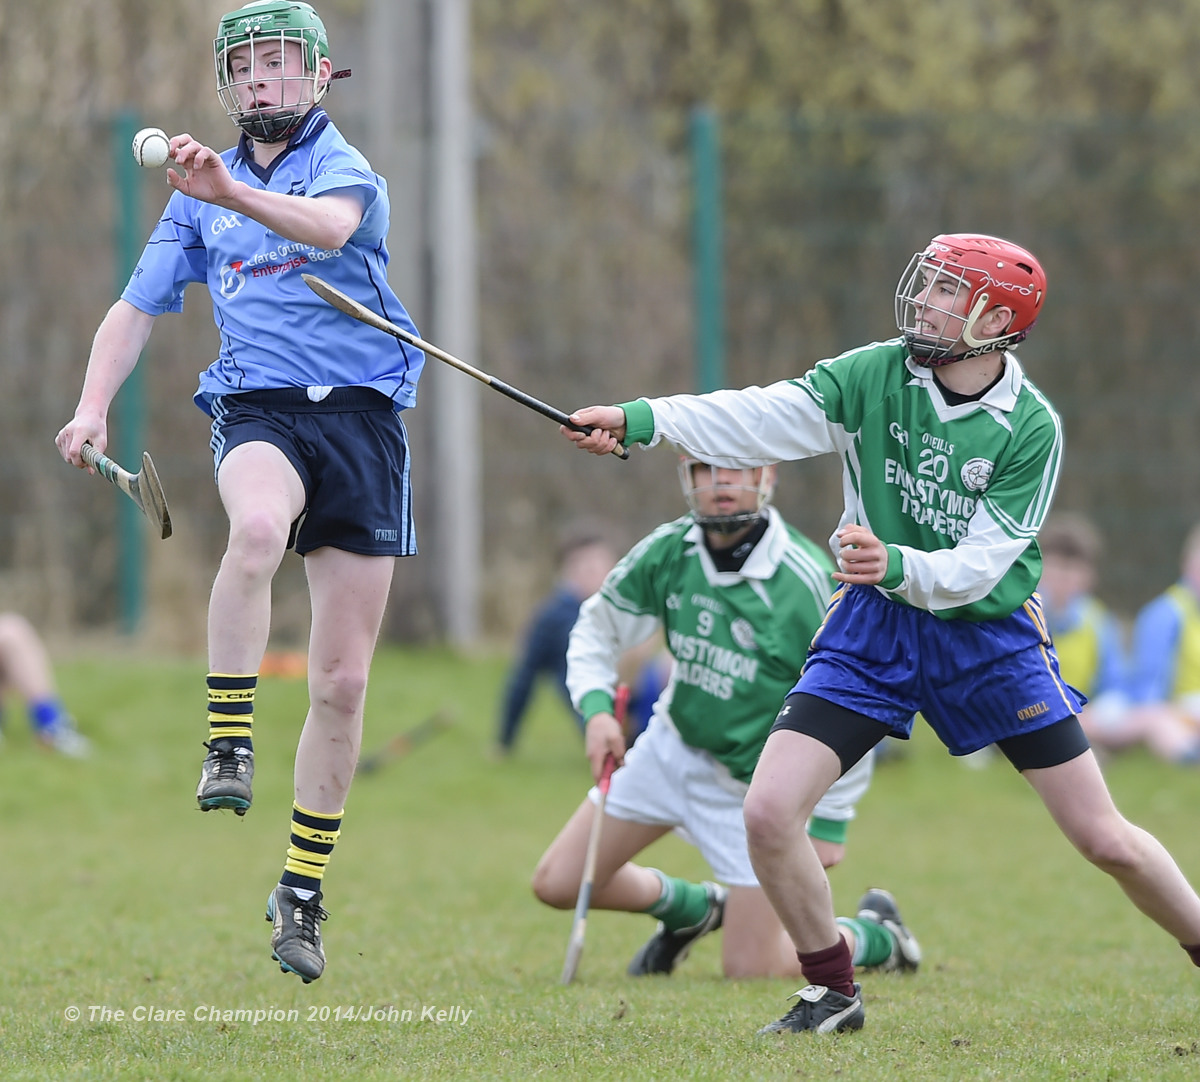 Henry Mc Grath of Scariff Community College  in action against Seamus Hurley of Ennistymon CBS during their Munster U-15 D final at Clarecastle. Photograph by John Kelly.